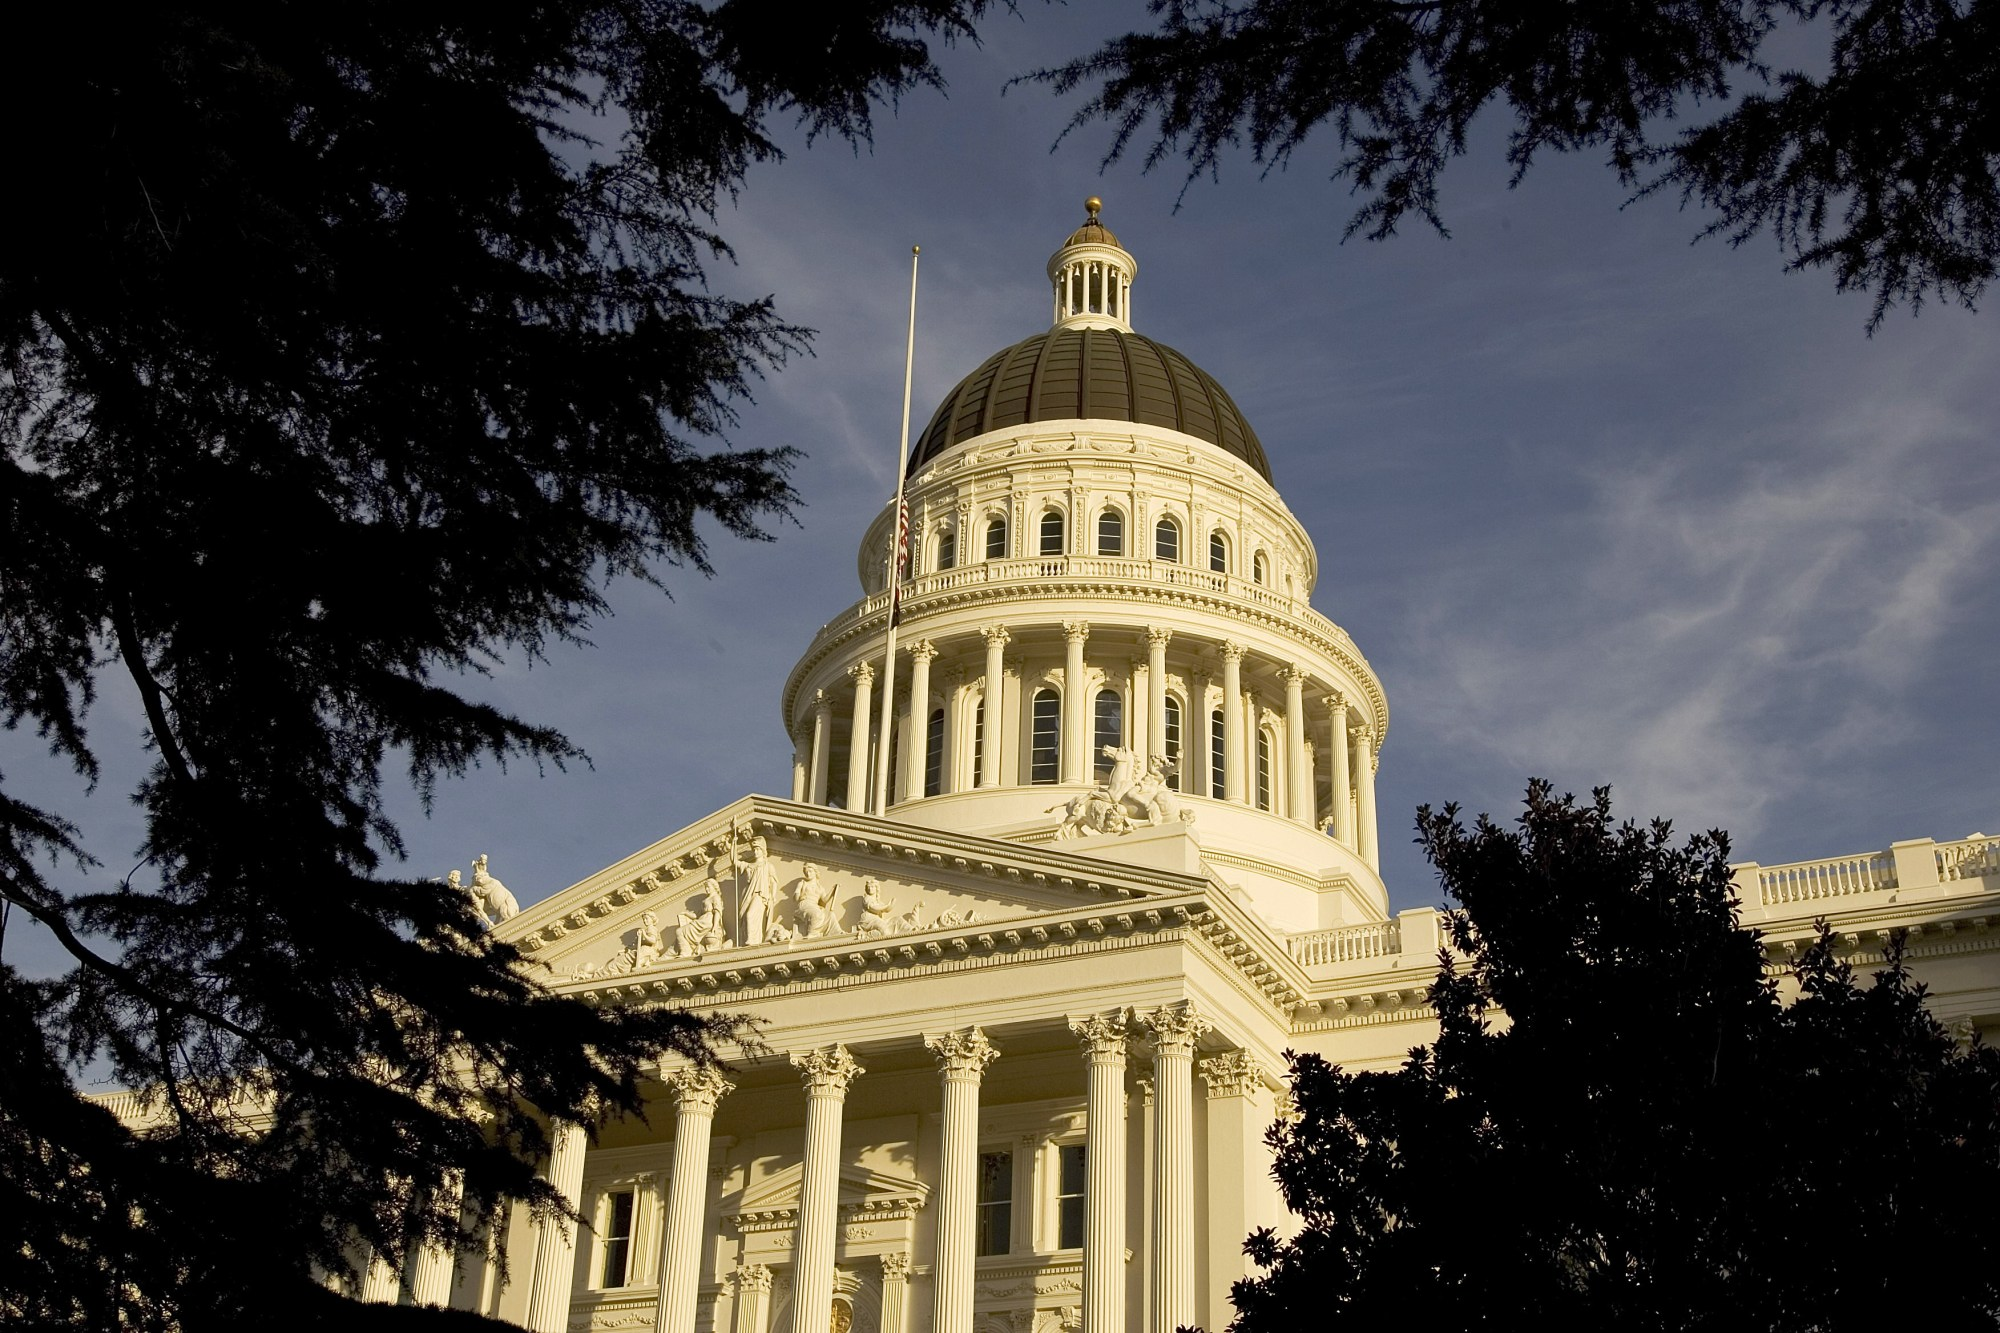 An exterior of the California state Capitol in Sacramento is shown on January 5, 2006. (David Paul Morris/Getty Images)